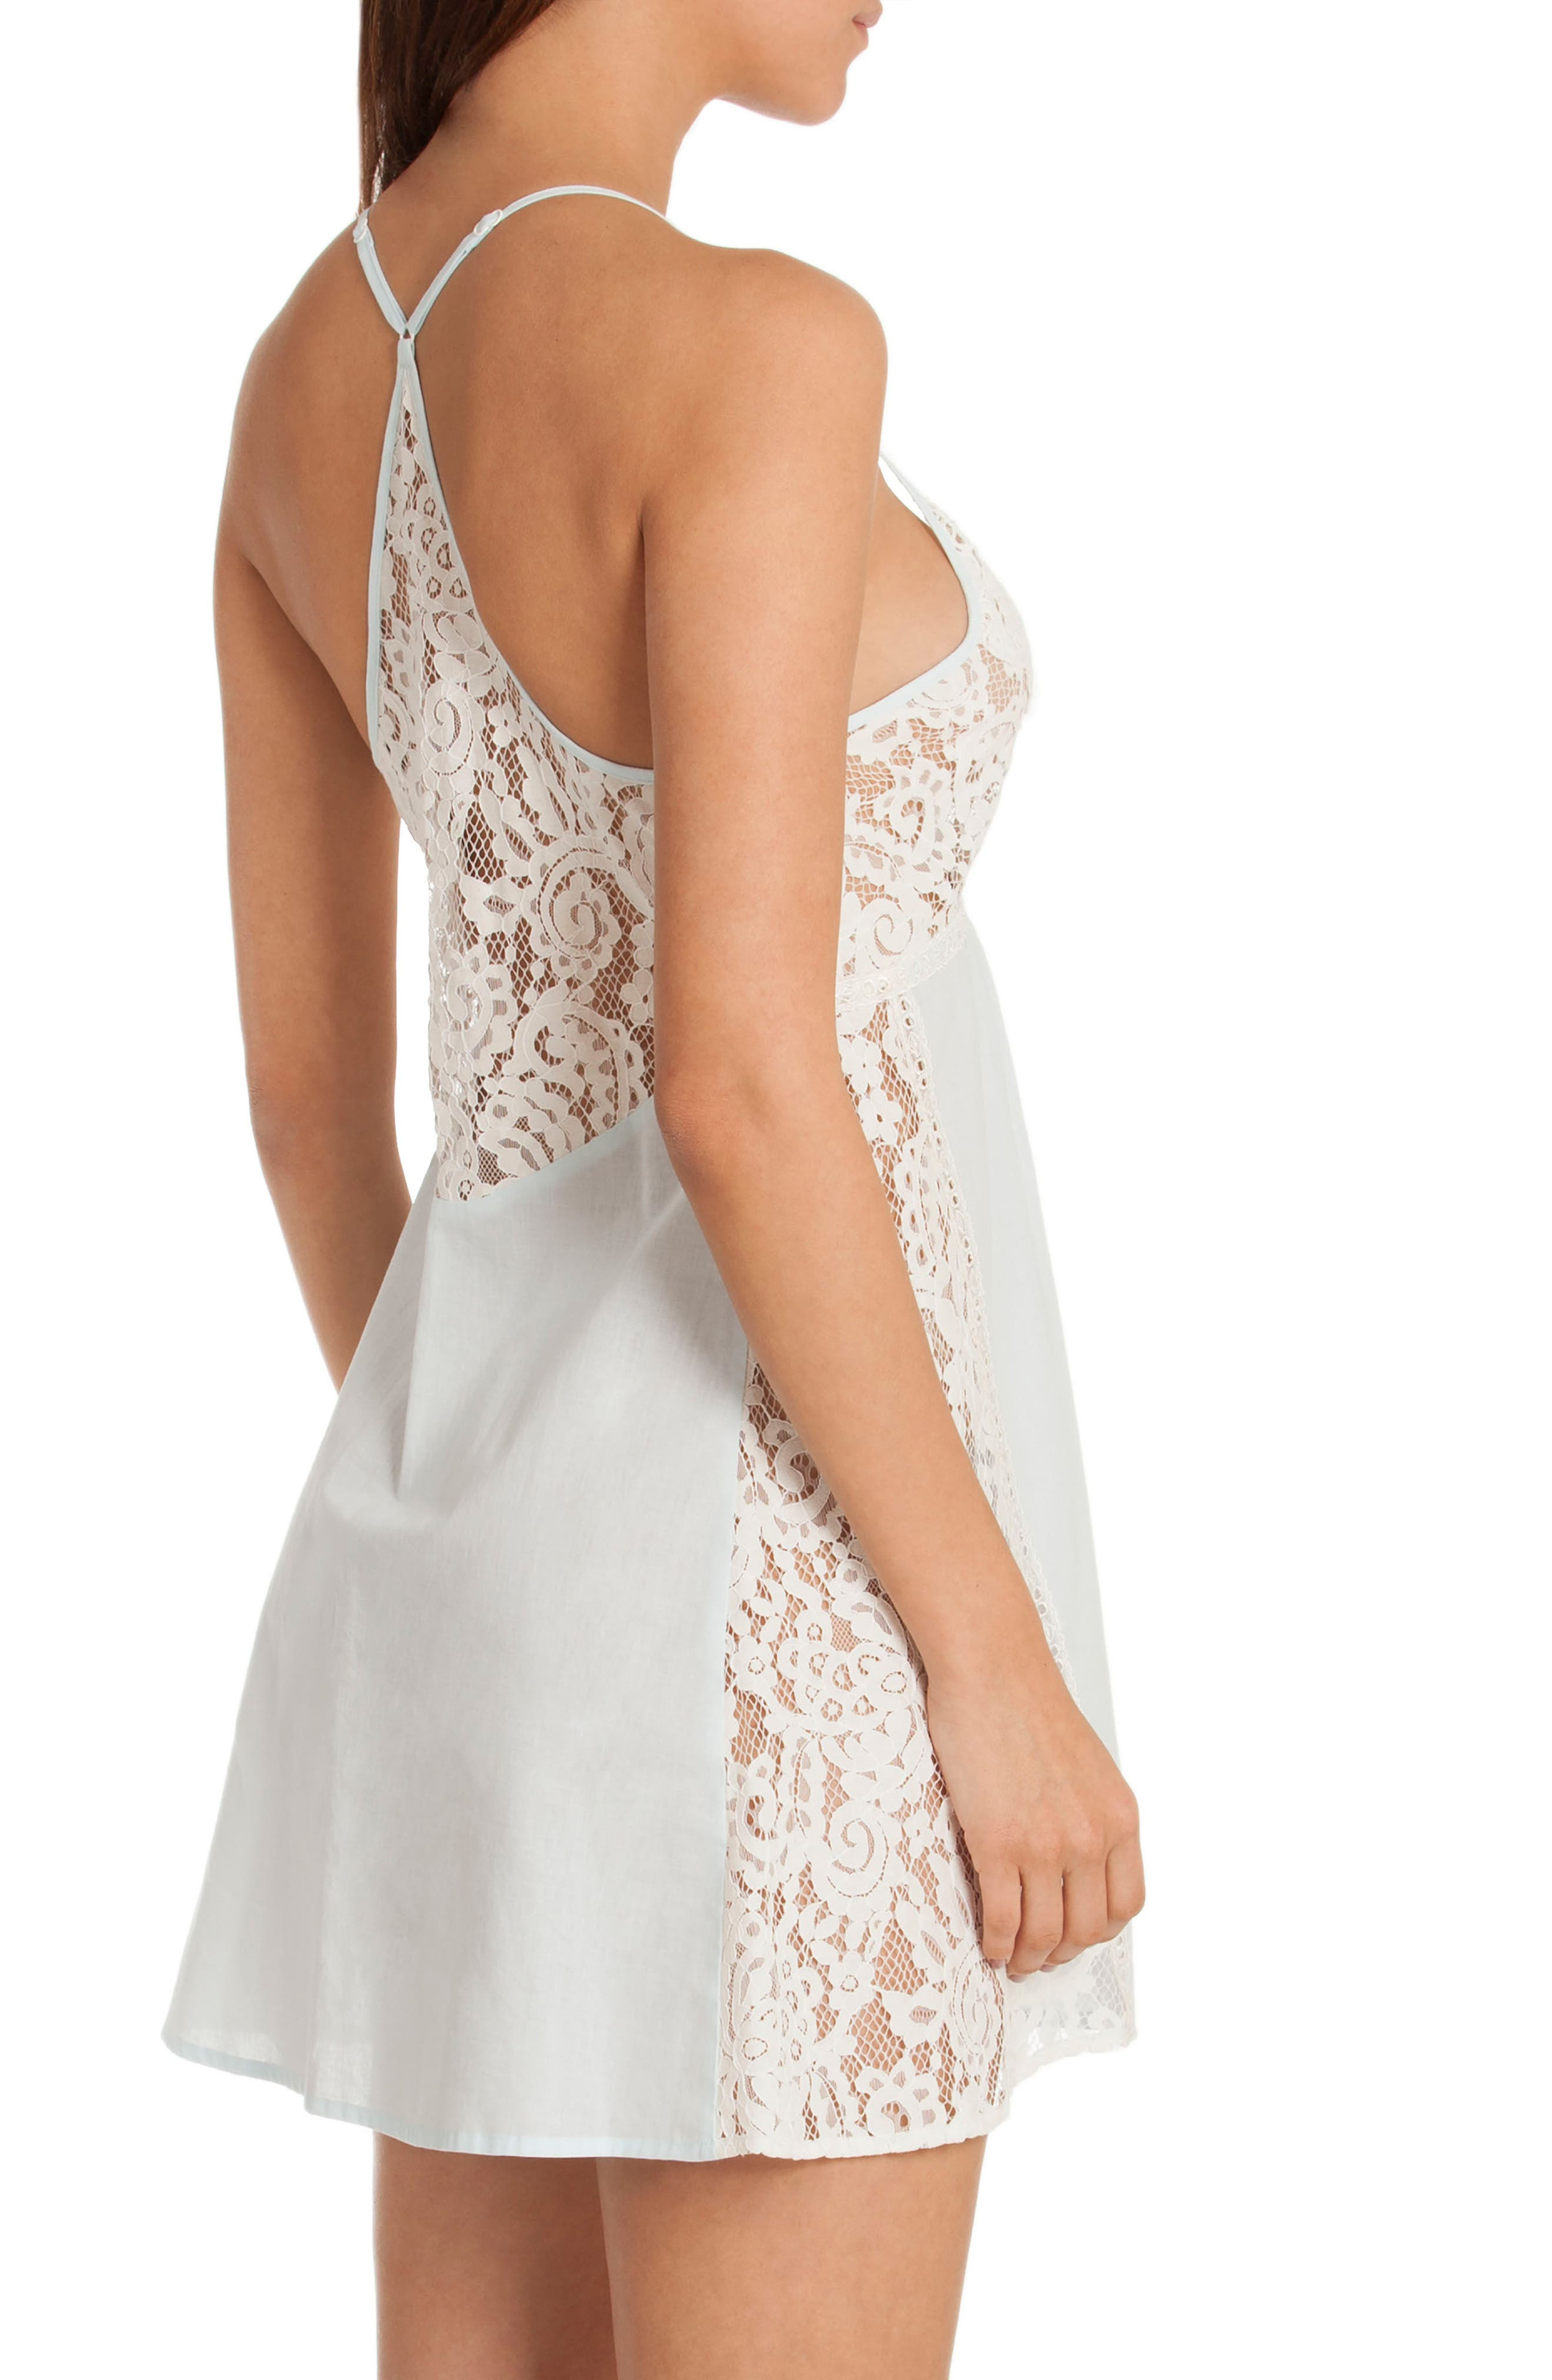 Lace Chemise,                             Alternate thumbnail 2, color,                             Skyfall/ Beige